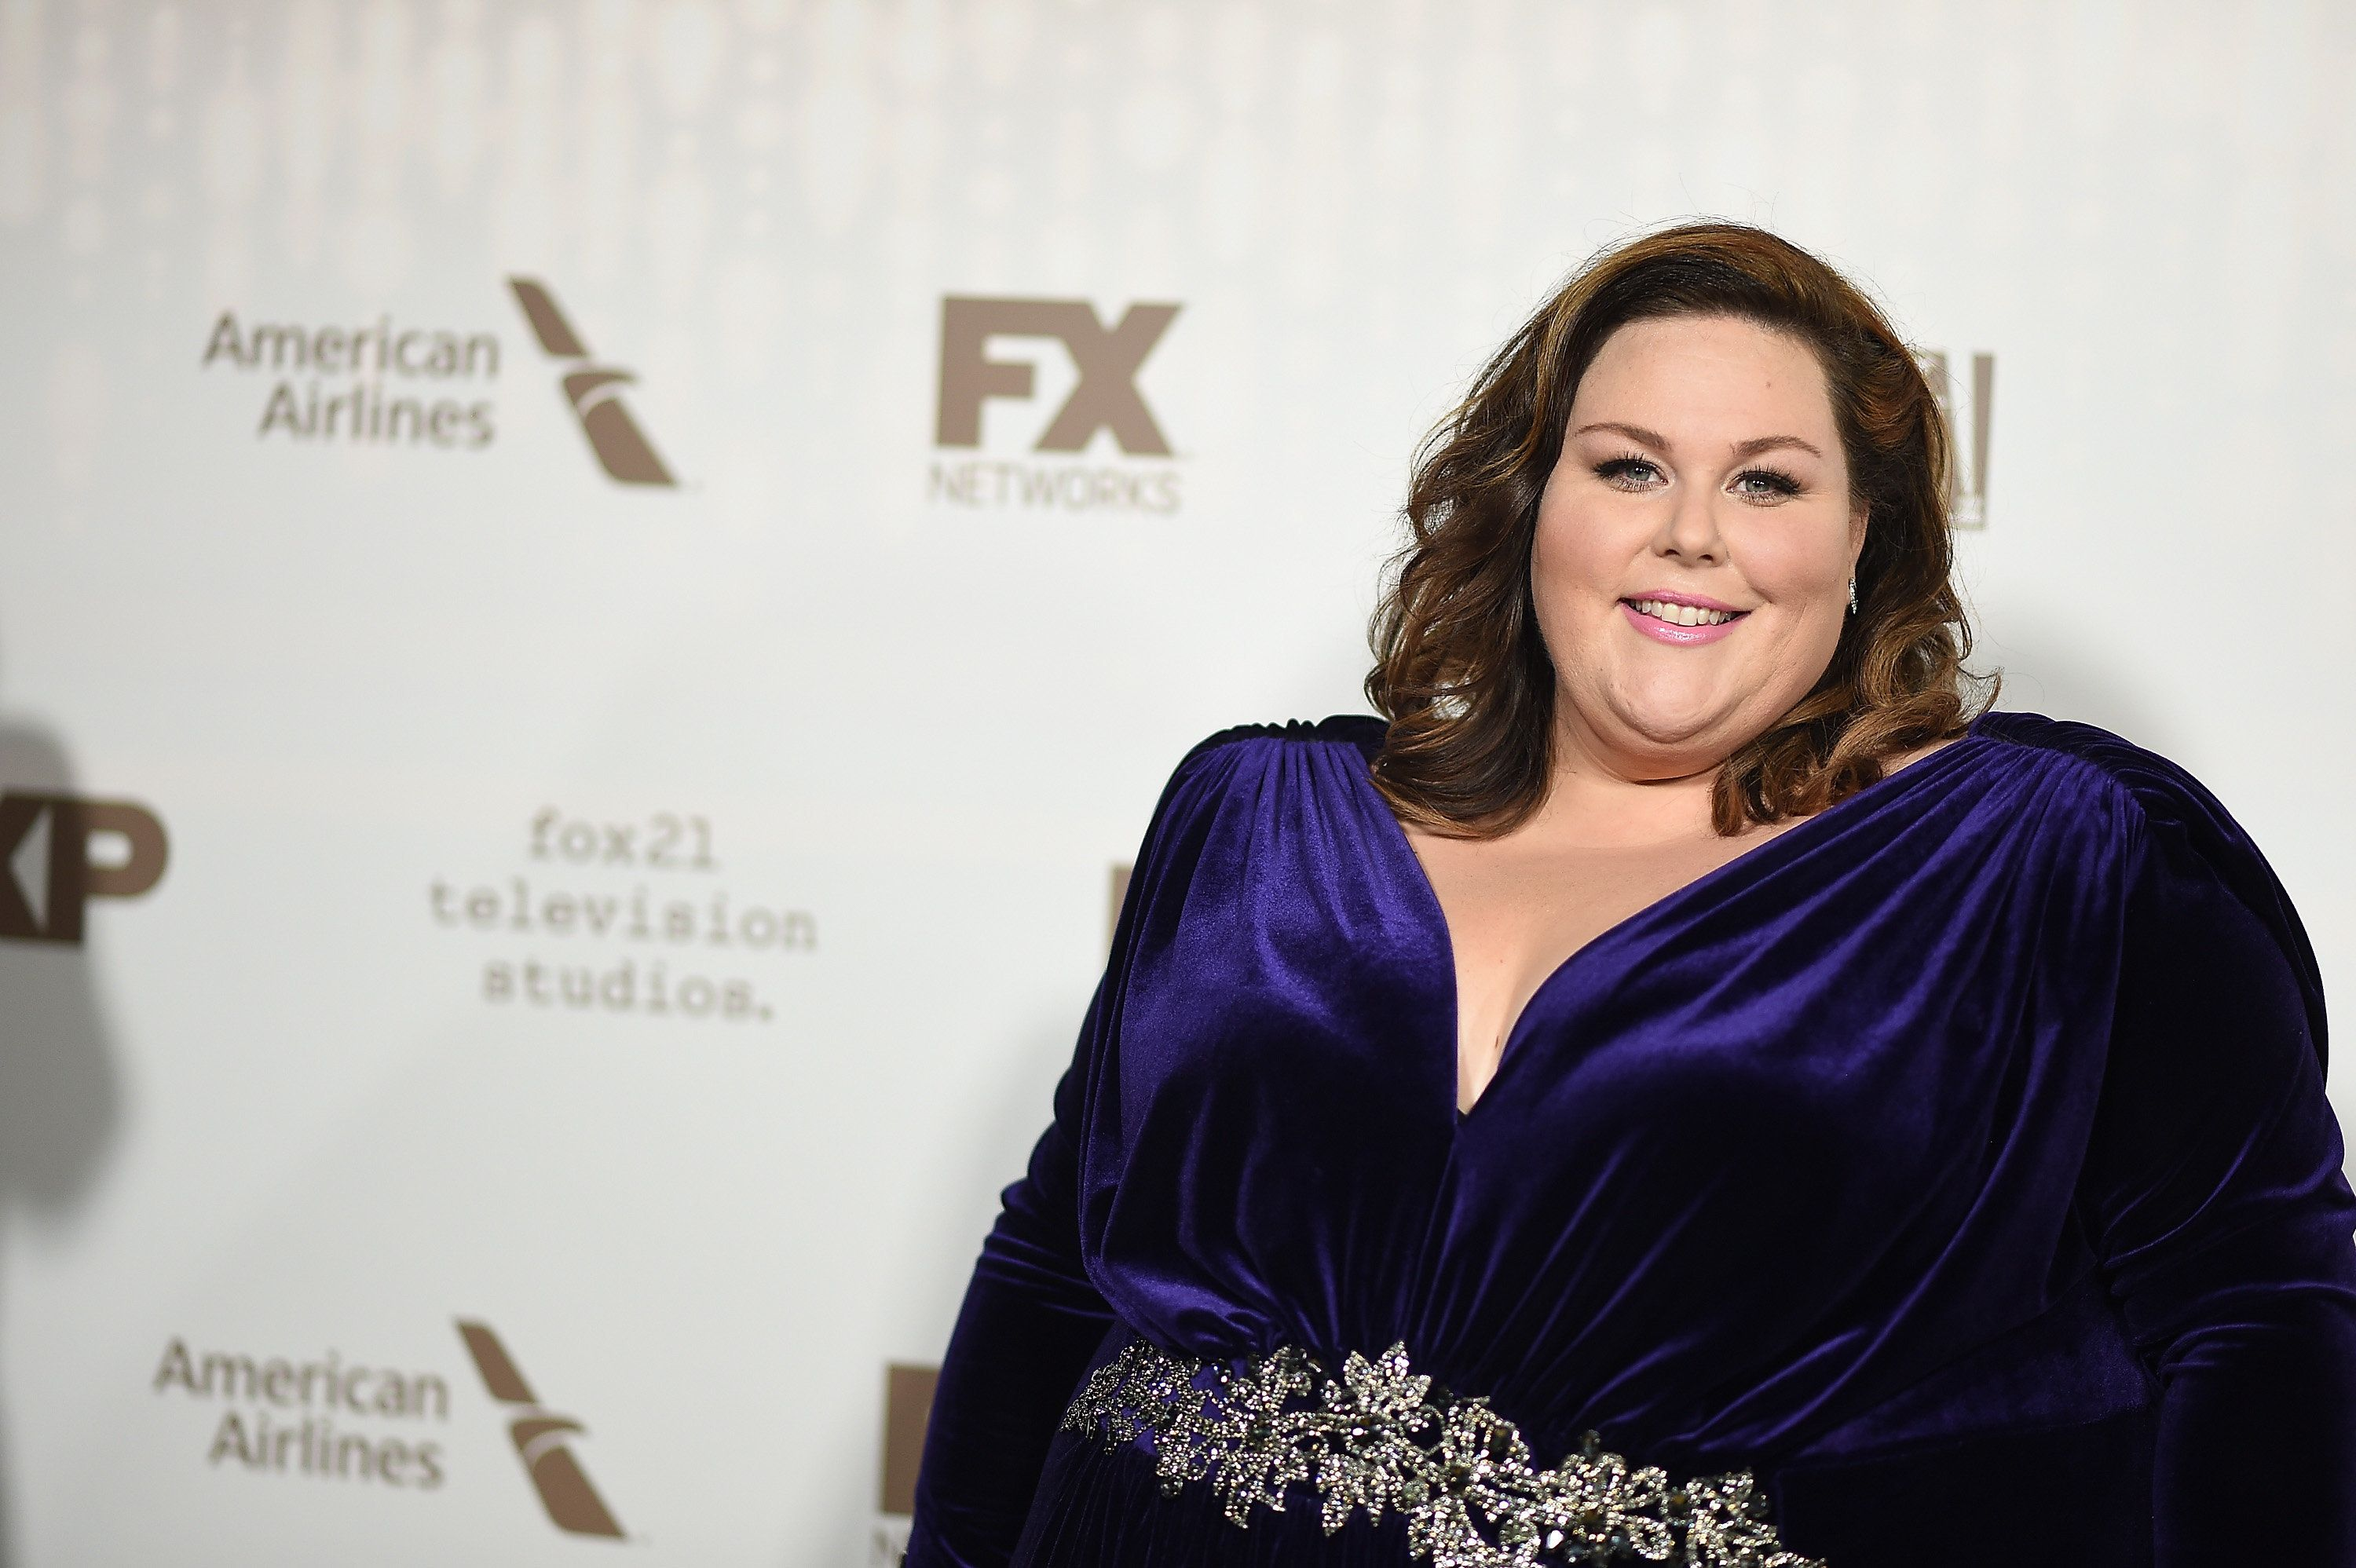 BEVERLY HILLS, CA - JANUARY 08: Actress Chrissy Metz attends FOX and FX's 2017 Golden Globe Awards after party at The Beverly Hilton Hotel on January 8, 2017 in Beverly Hills, California.  (Photo by Jennifer Lourie/Getty Images)